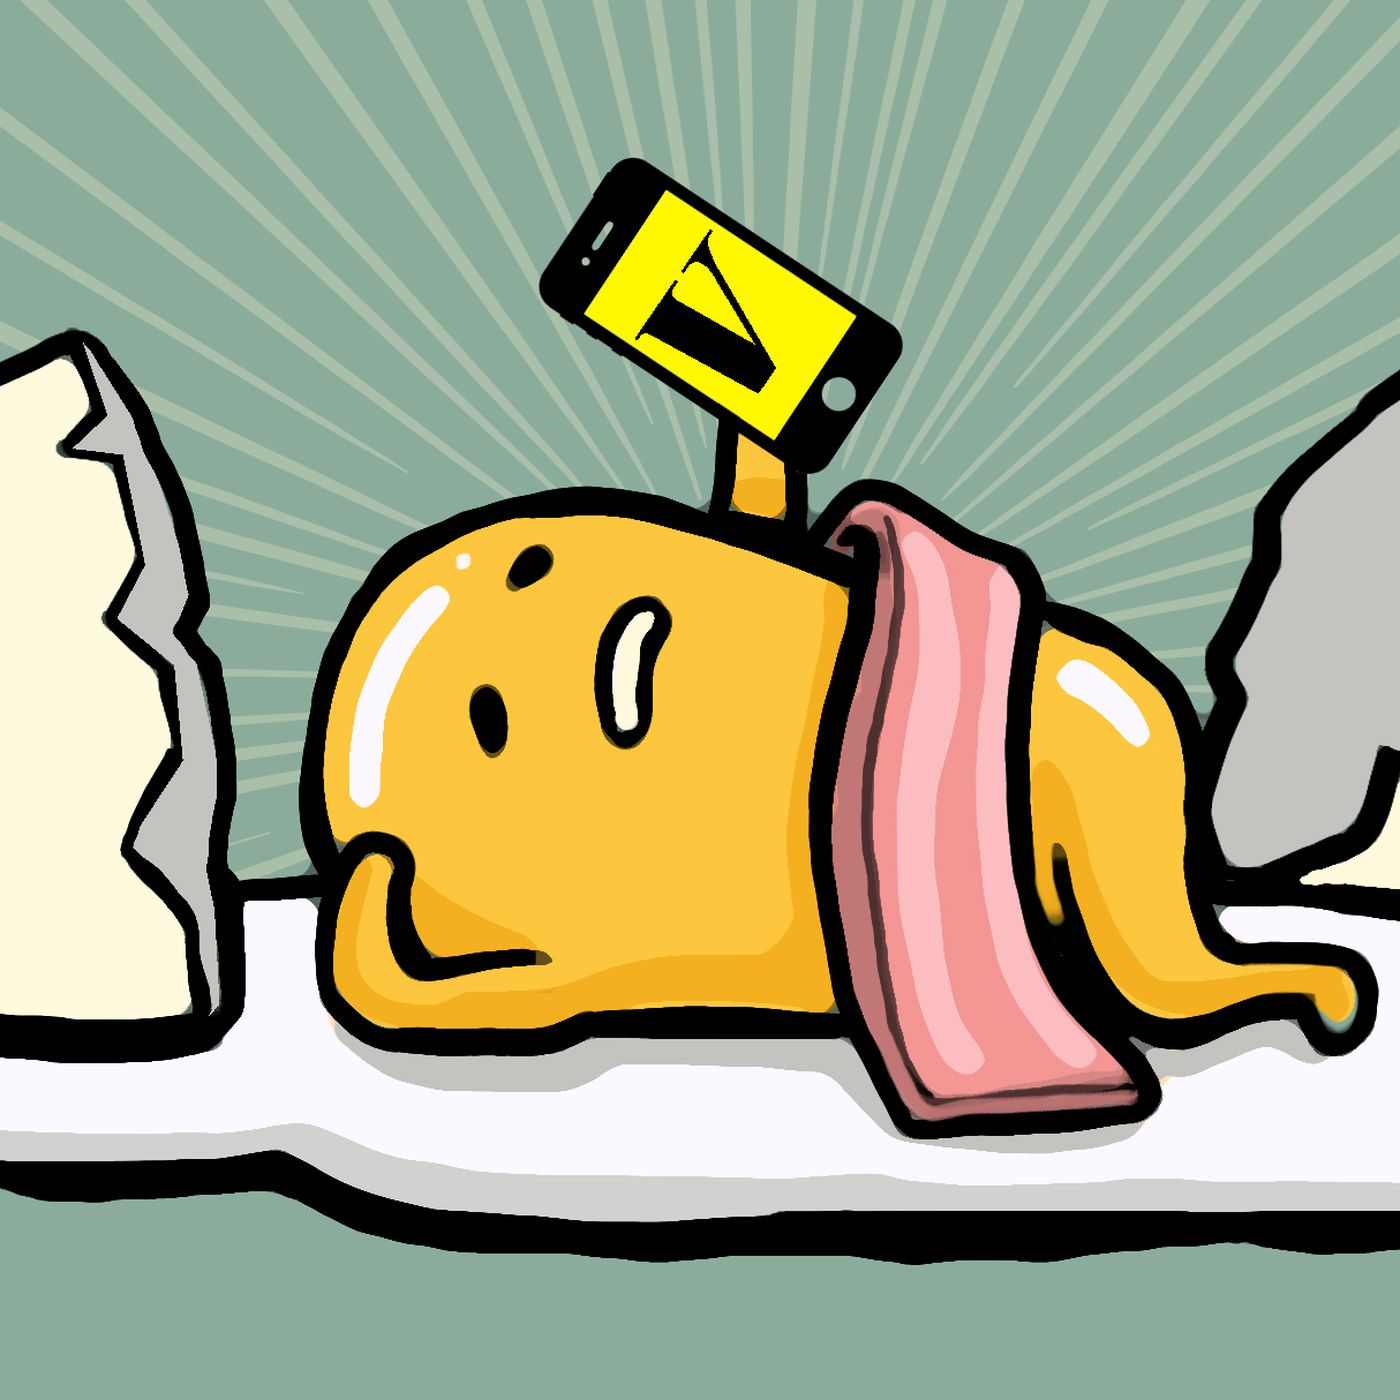 3242a6a79 How Gudetama, a lazy egg yolk with a butt, became an unstoppable cultural  phenomenon